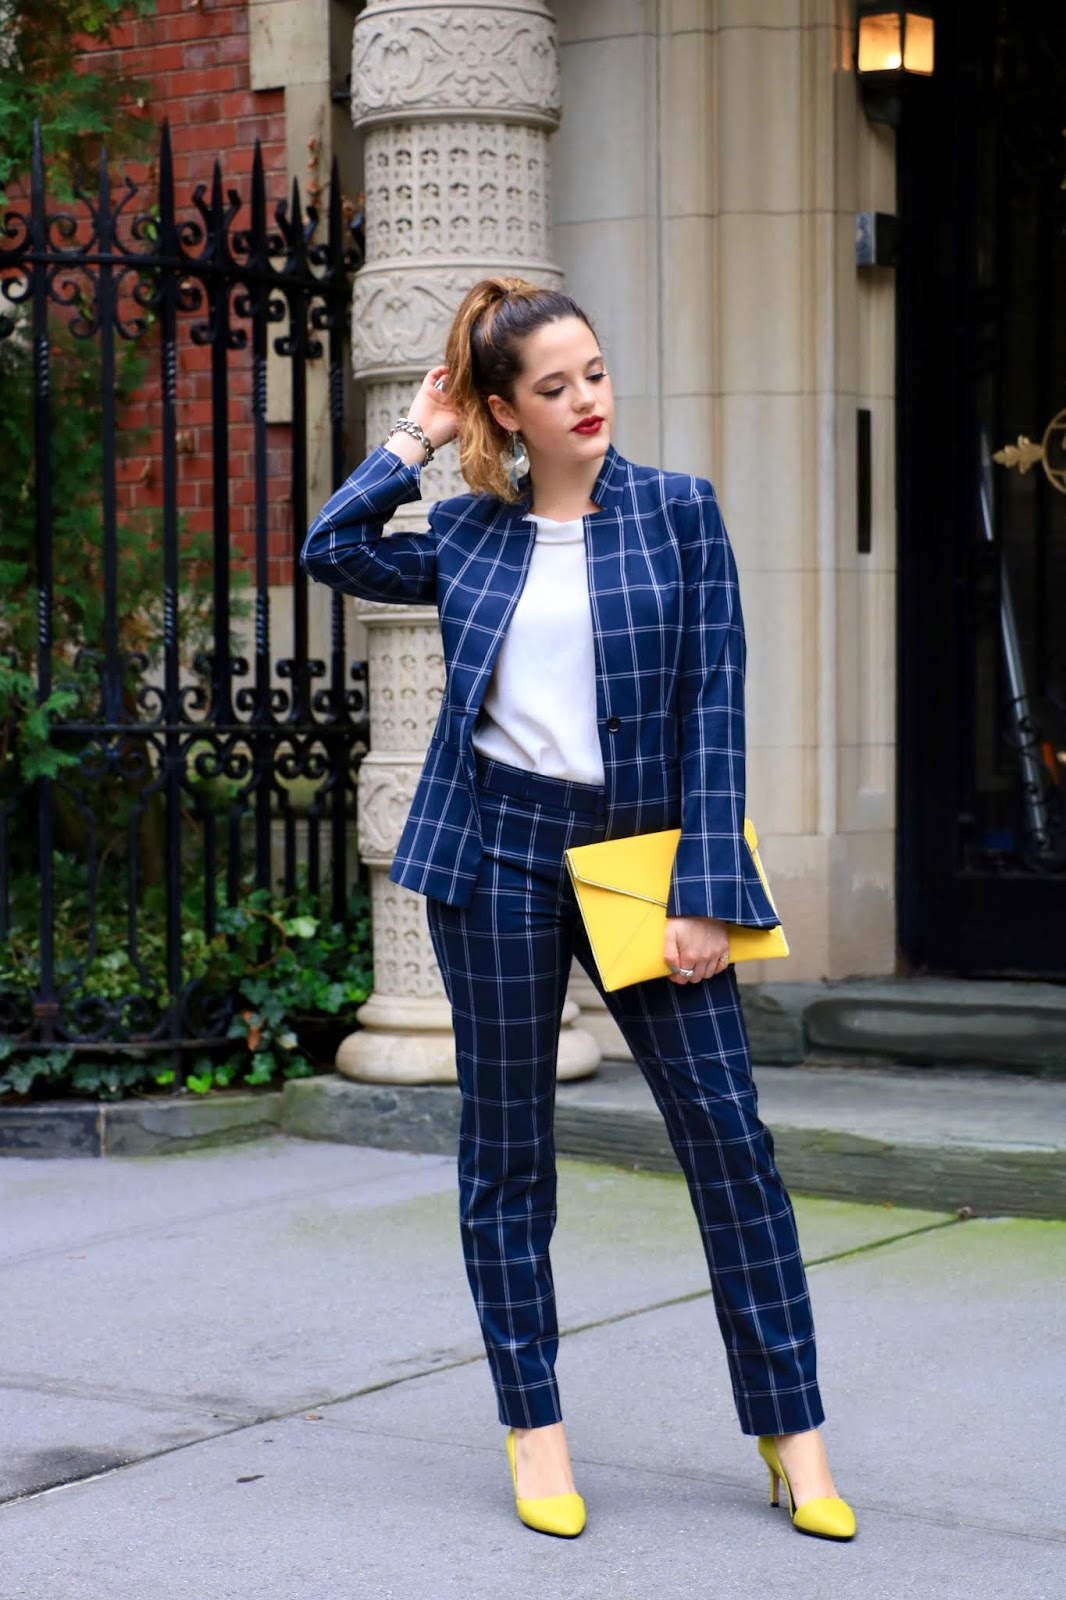 Nyc fashion blogger Kathleen Harper's plaid outfit